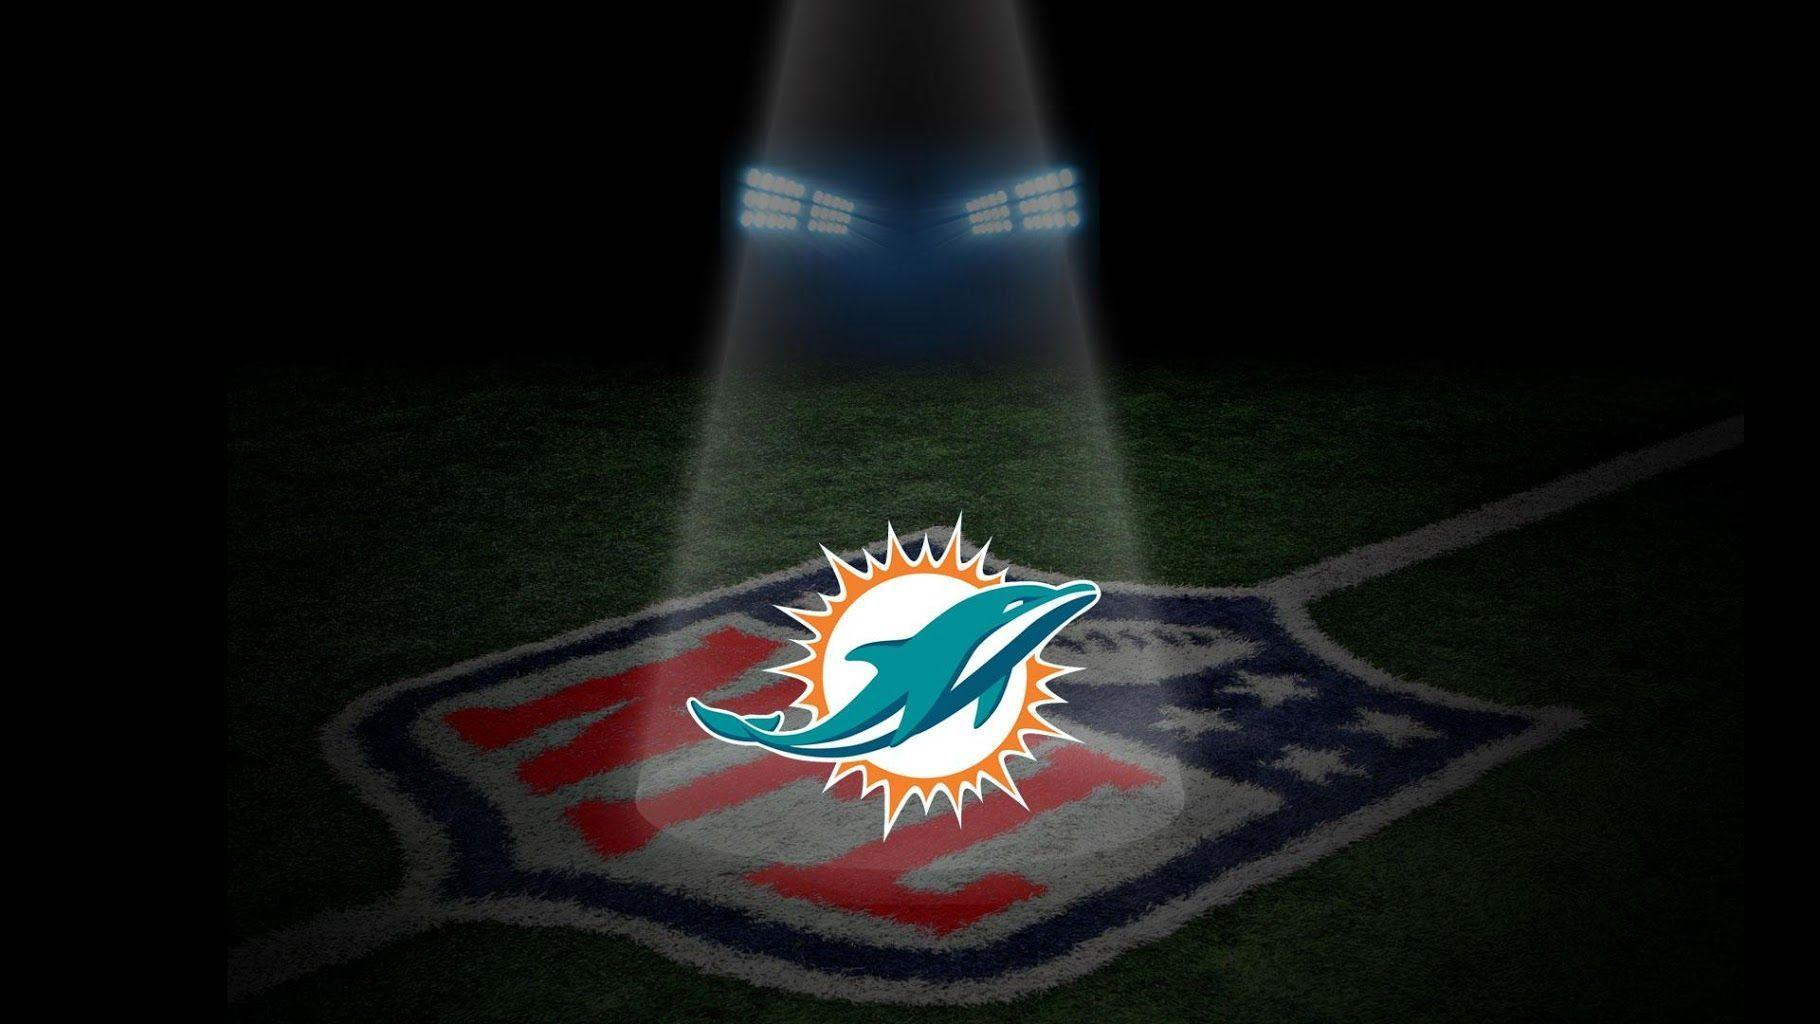 miami-dolphins-free-wallpaper-downloads - HDwallpaperwall.com